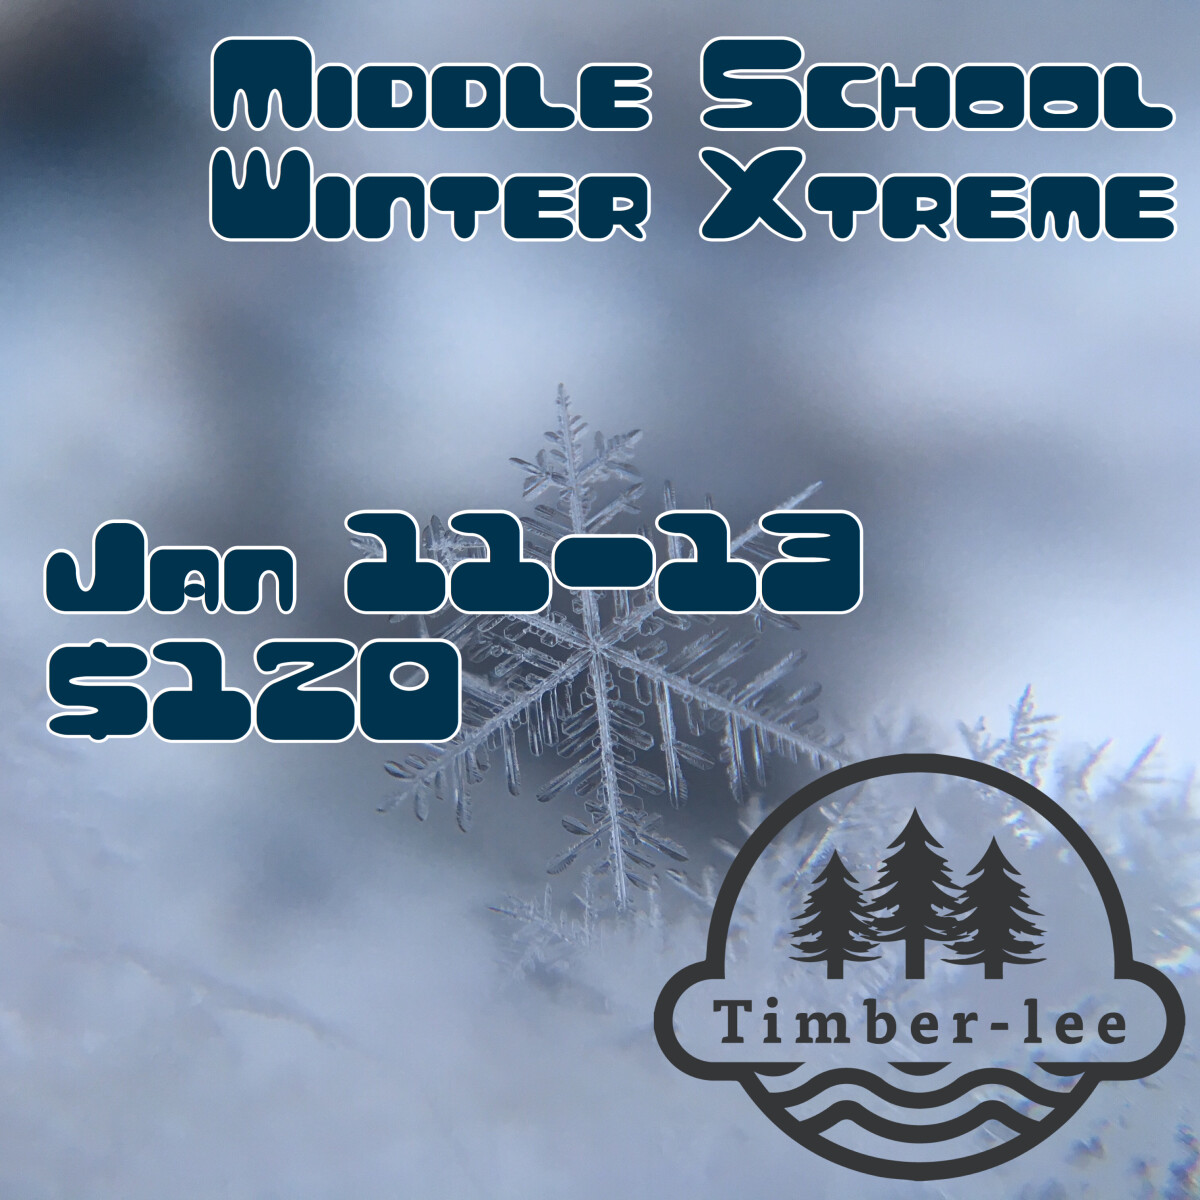 Middle School Winter Xtreme